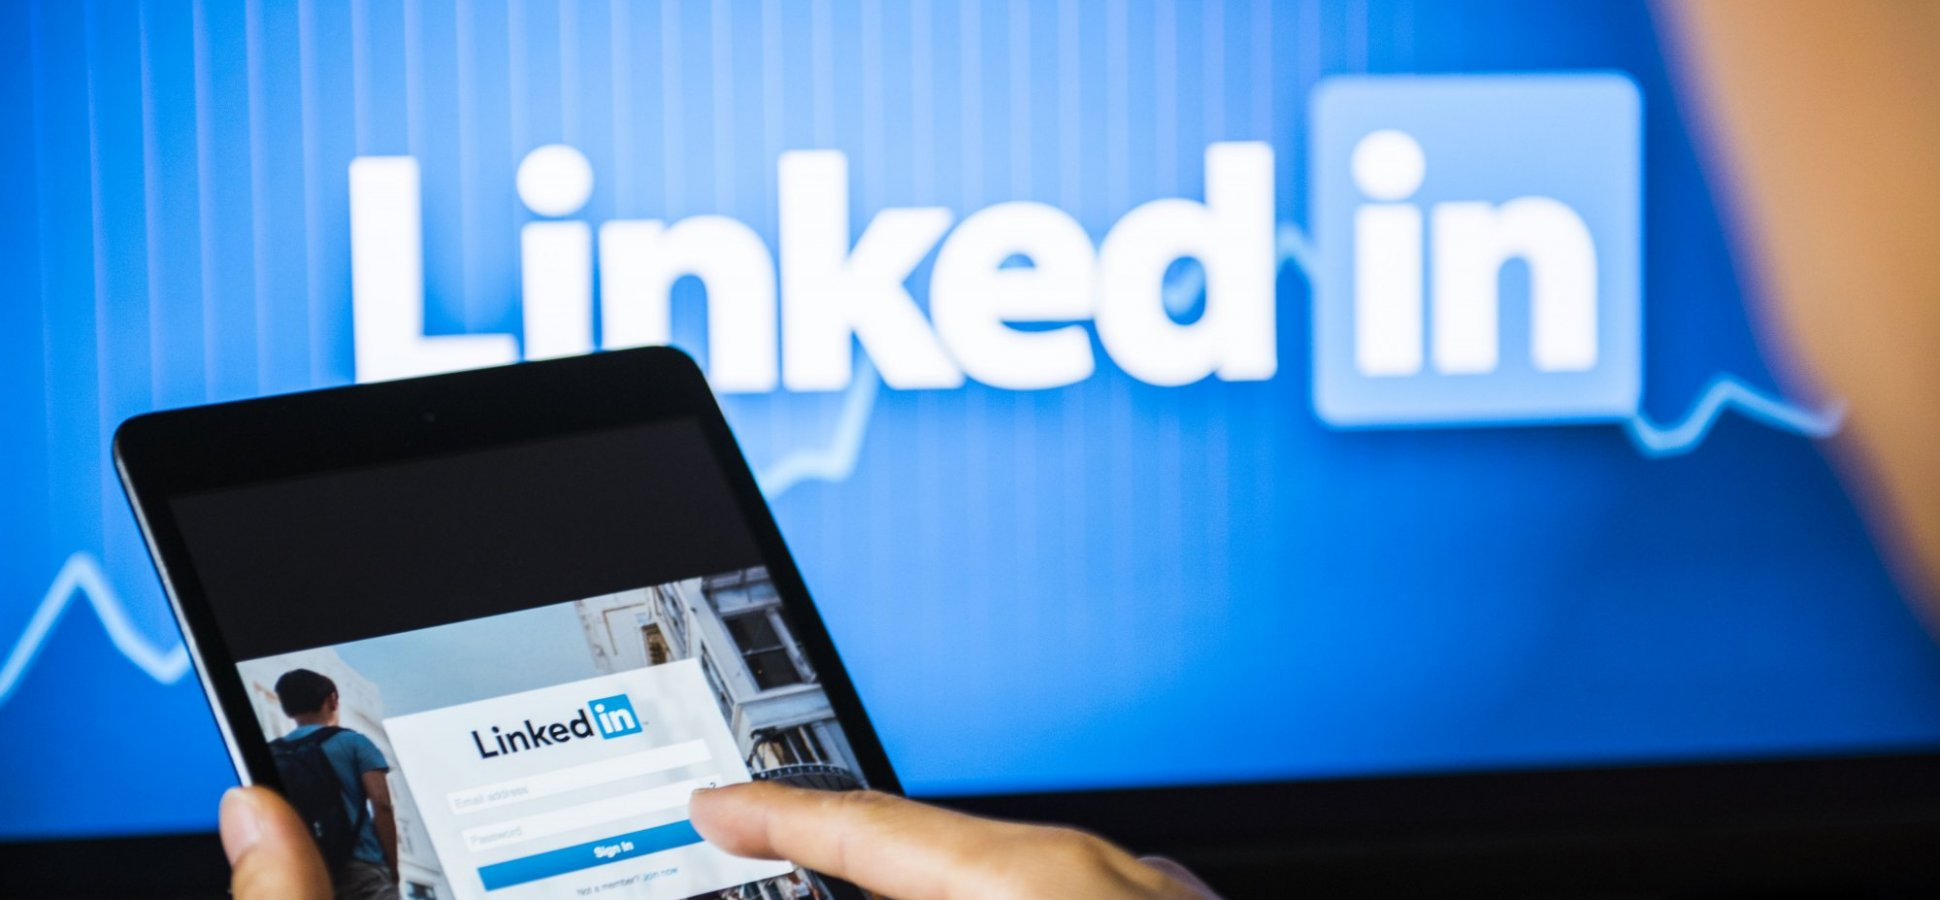 A New LinkedIn Study Just Revealed America's 10 Most In-Demand Skill Sets